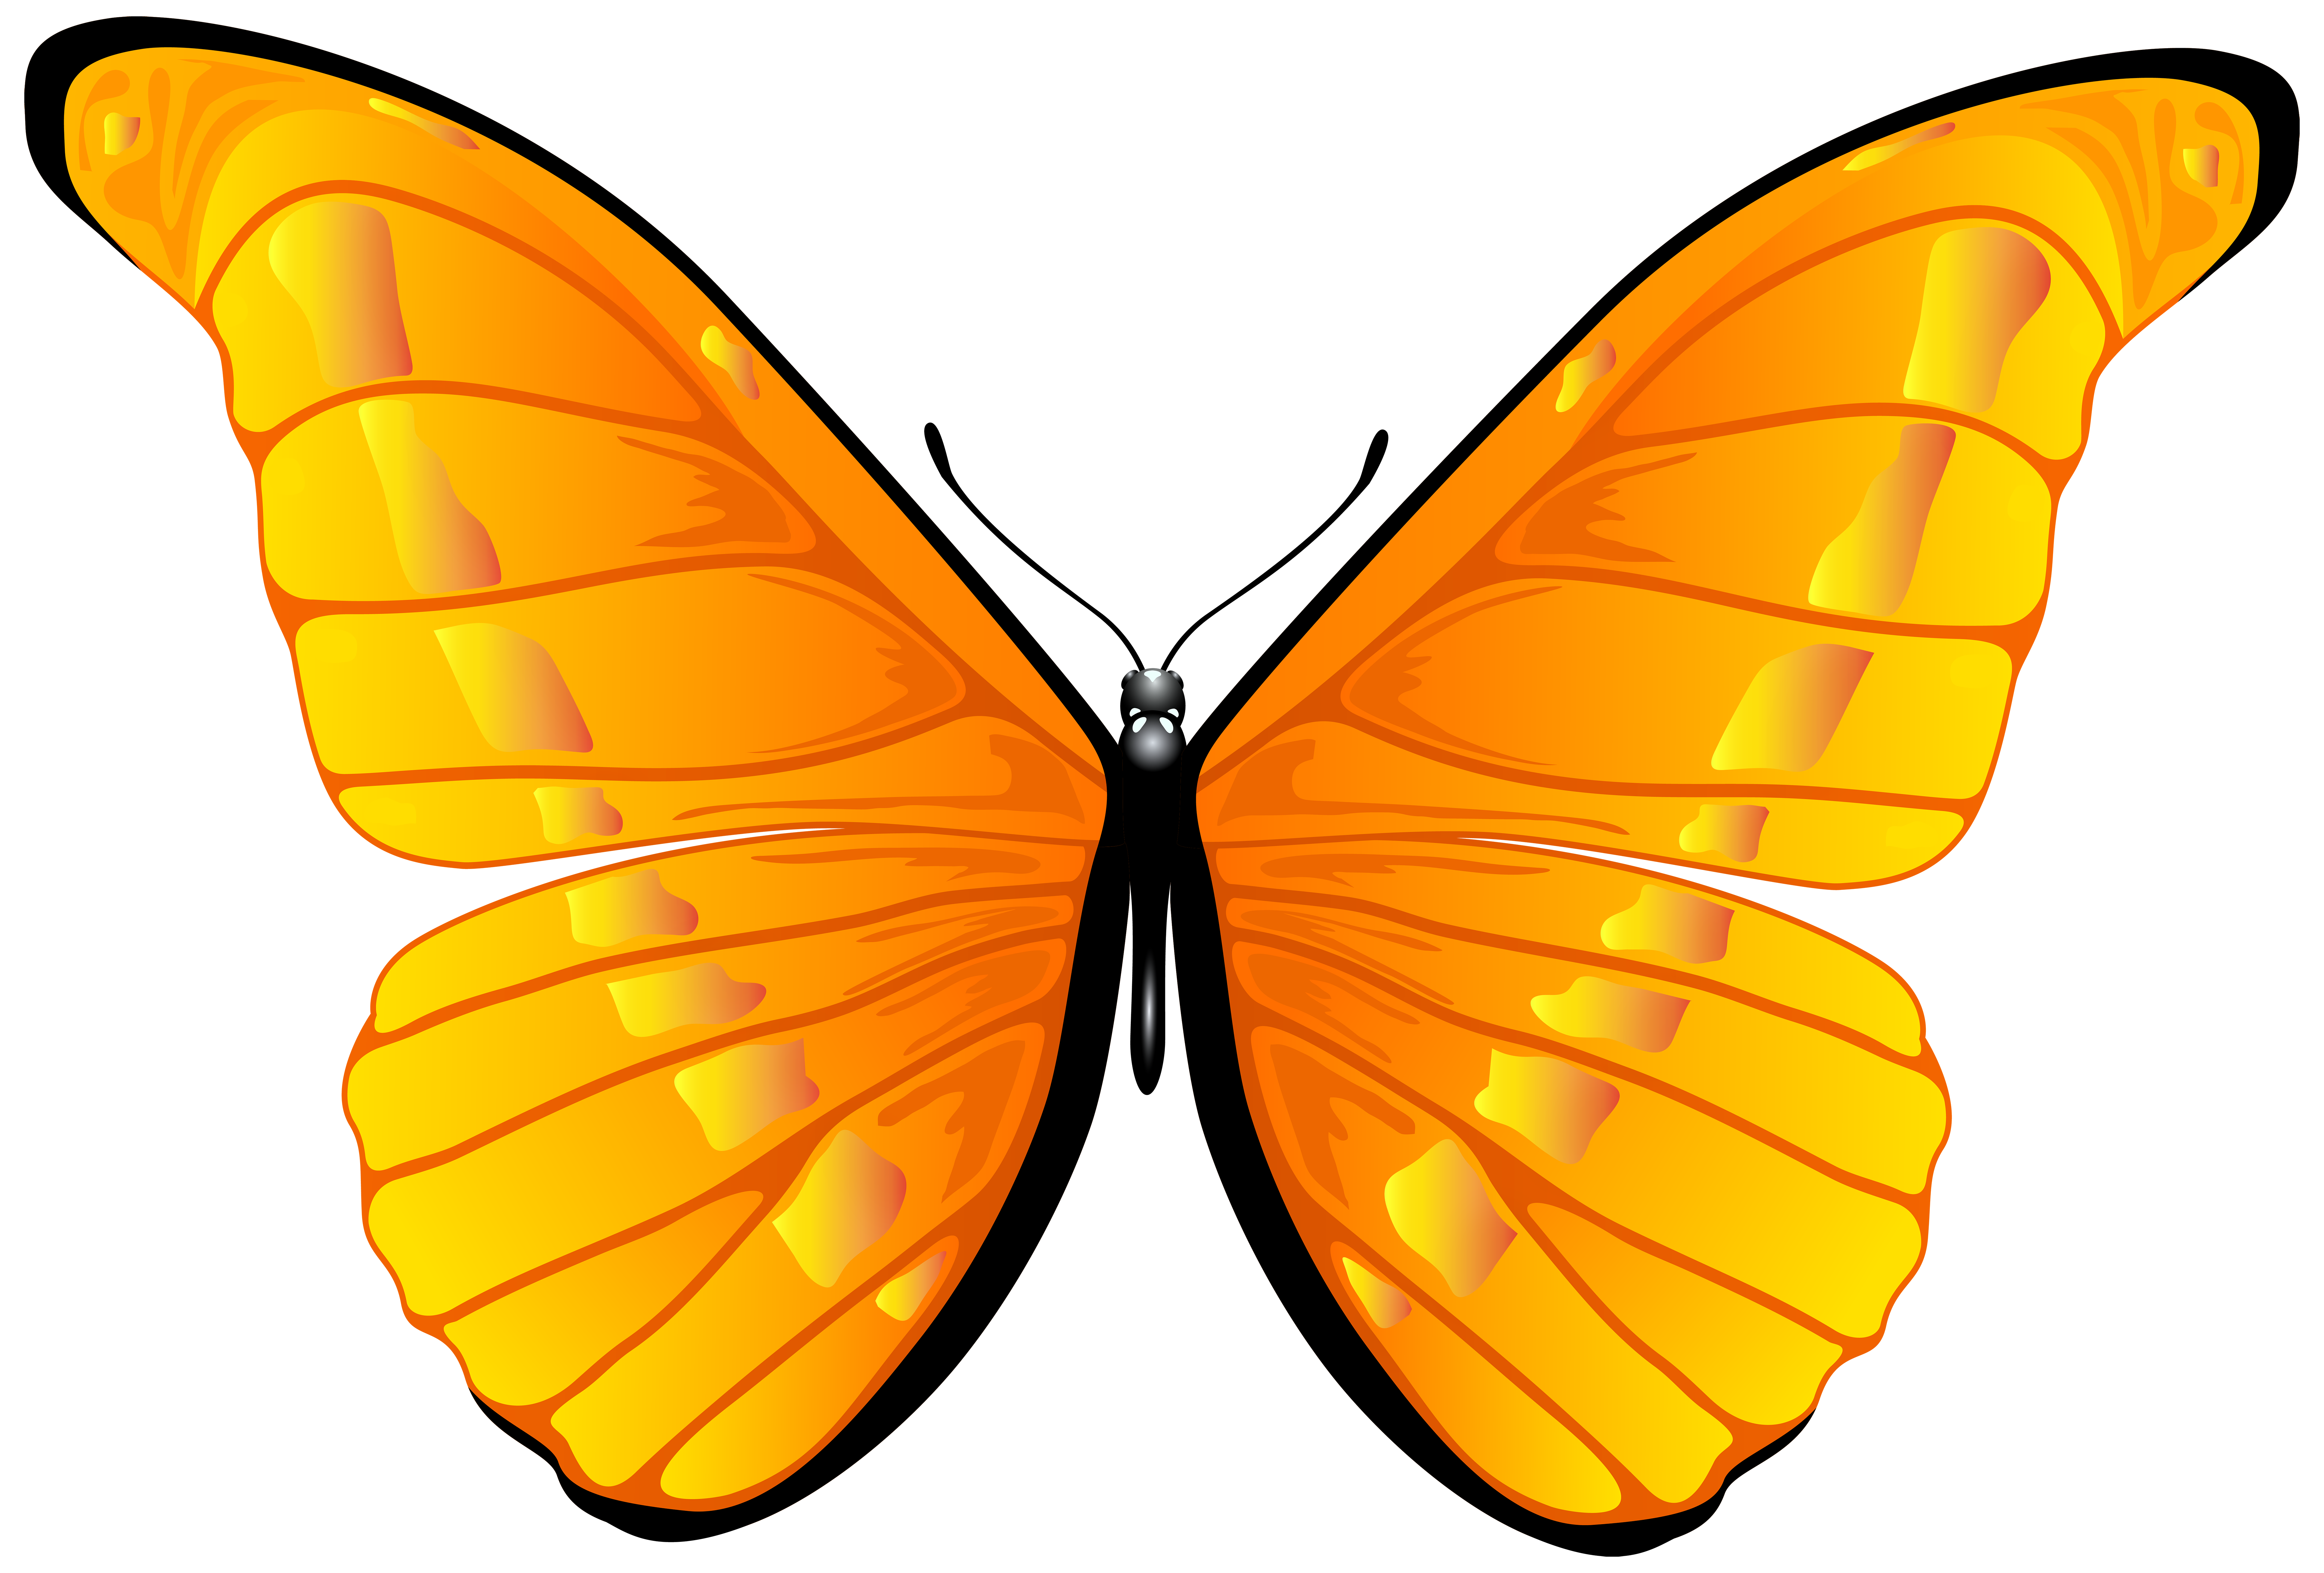 Bug clipart orange butterfly 49 Clipart Clipart Clipart Butterfly